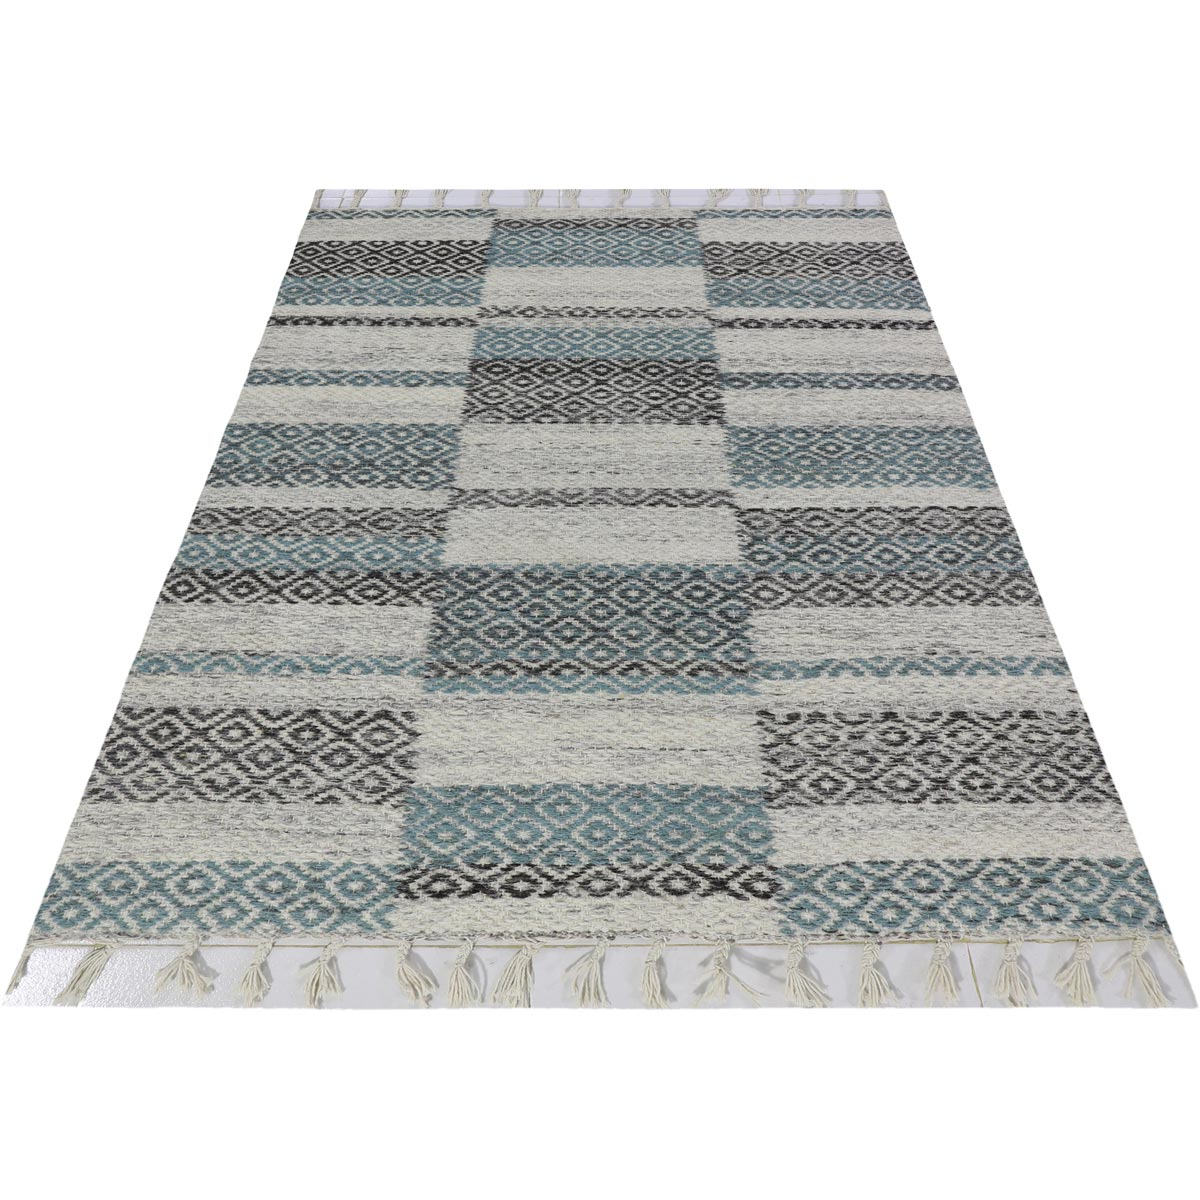 Tangier Rug 10 Grey/Blue 2